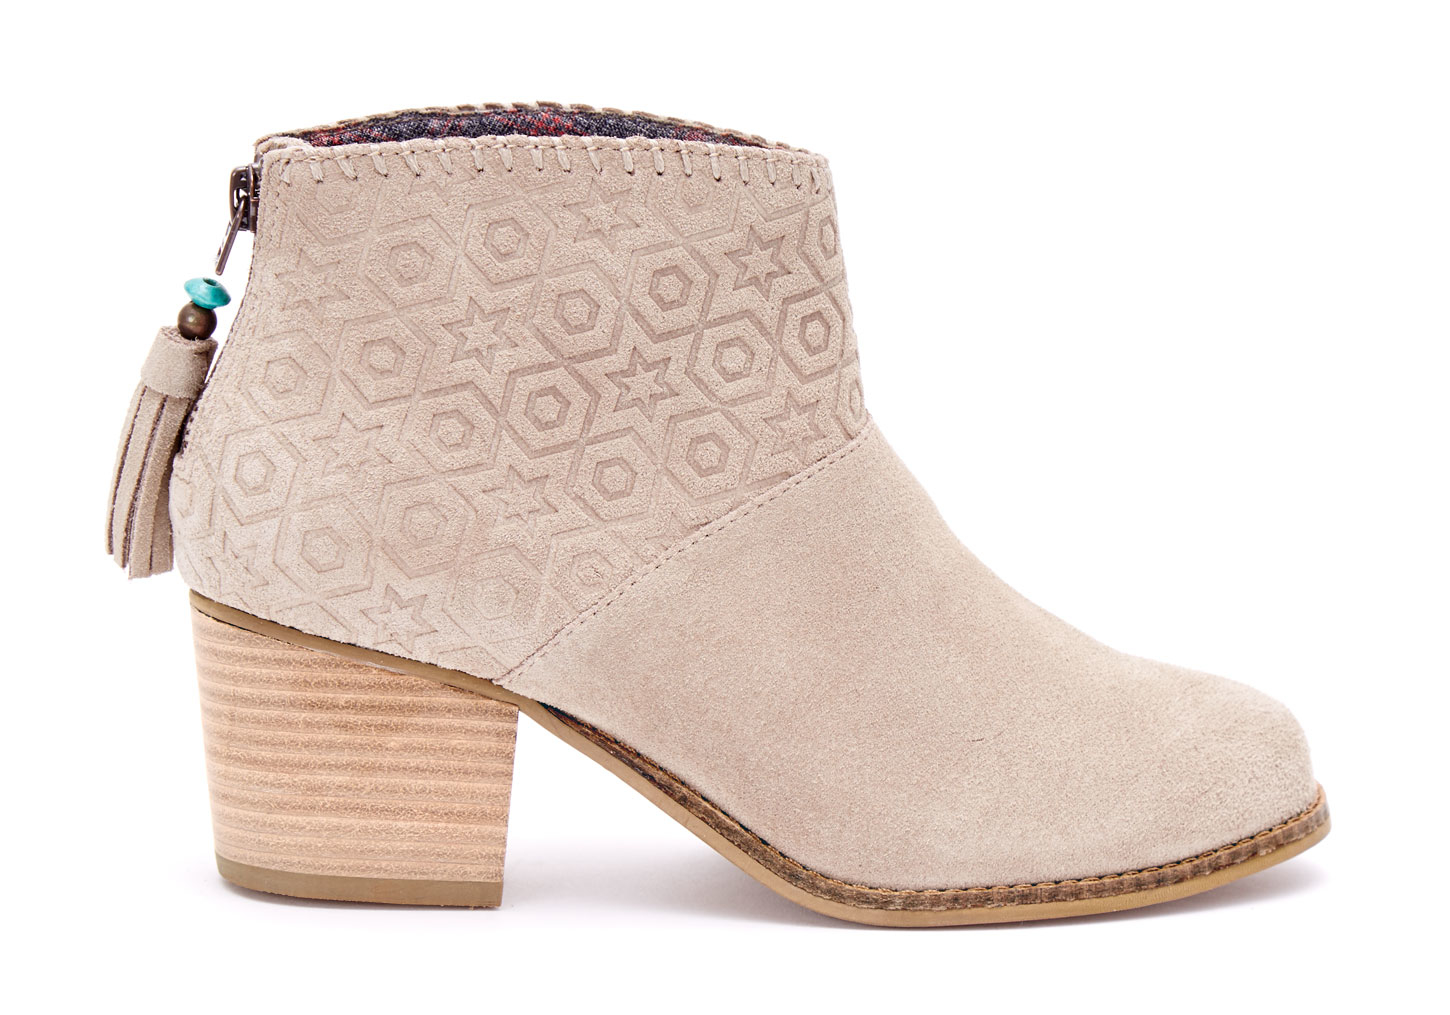 Shop Women's Joie Tan size Ankle Boots & Booties at a discounted price at Poshmark. Description: New Beige/ Tan suede booties from Joie Gorgeous and comfortable Suede sole